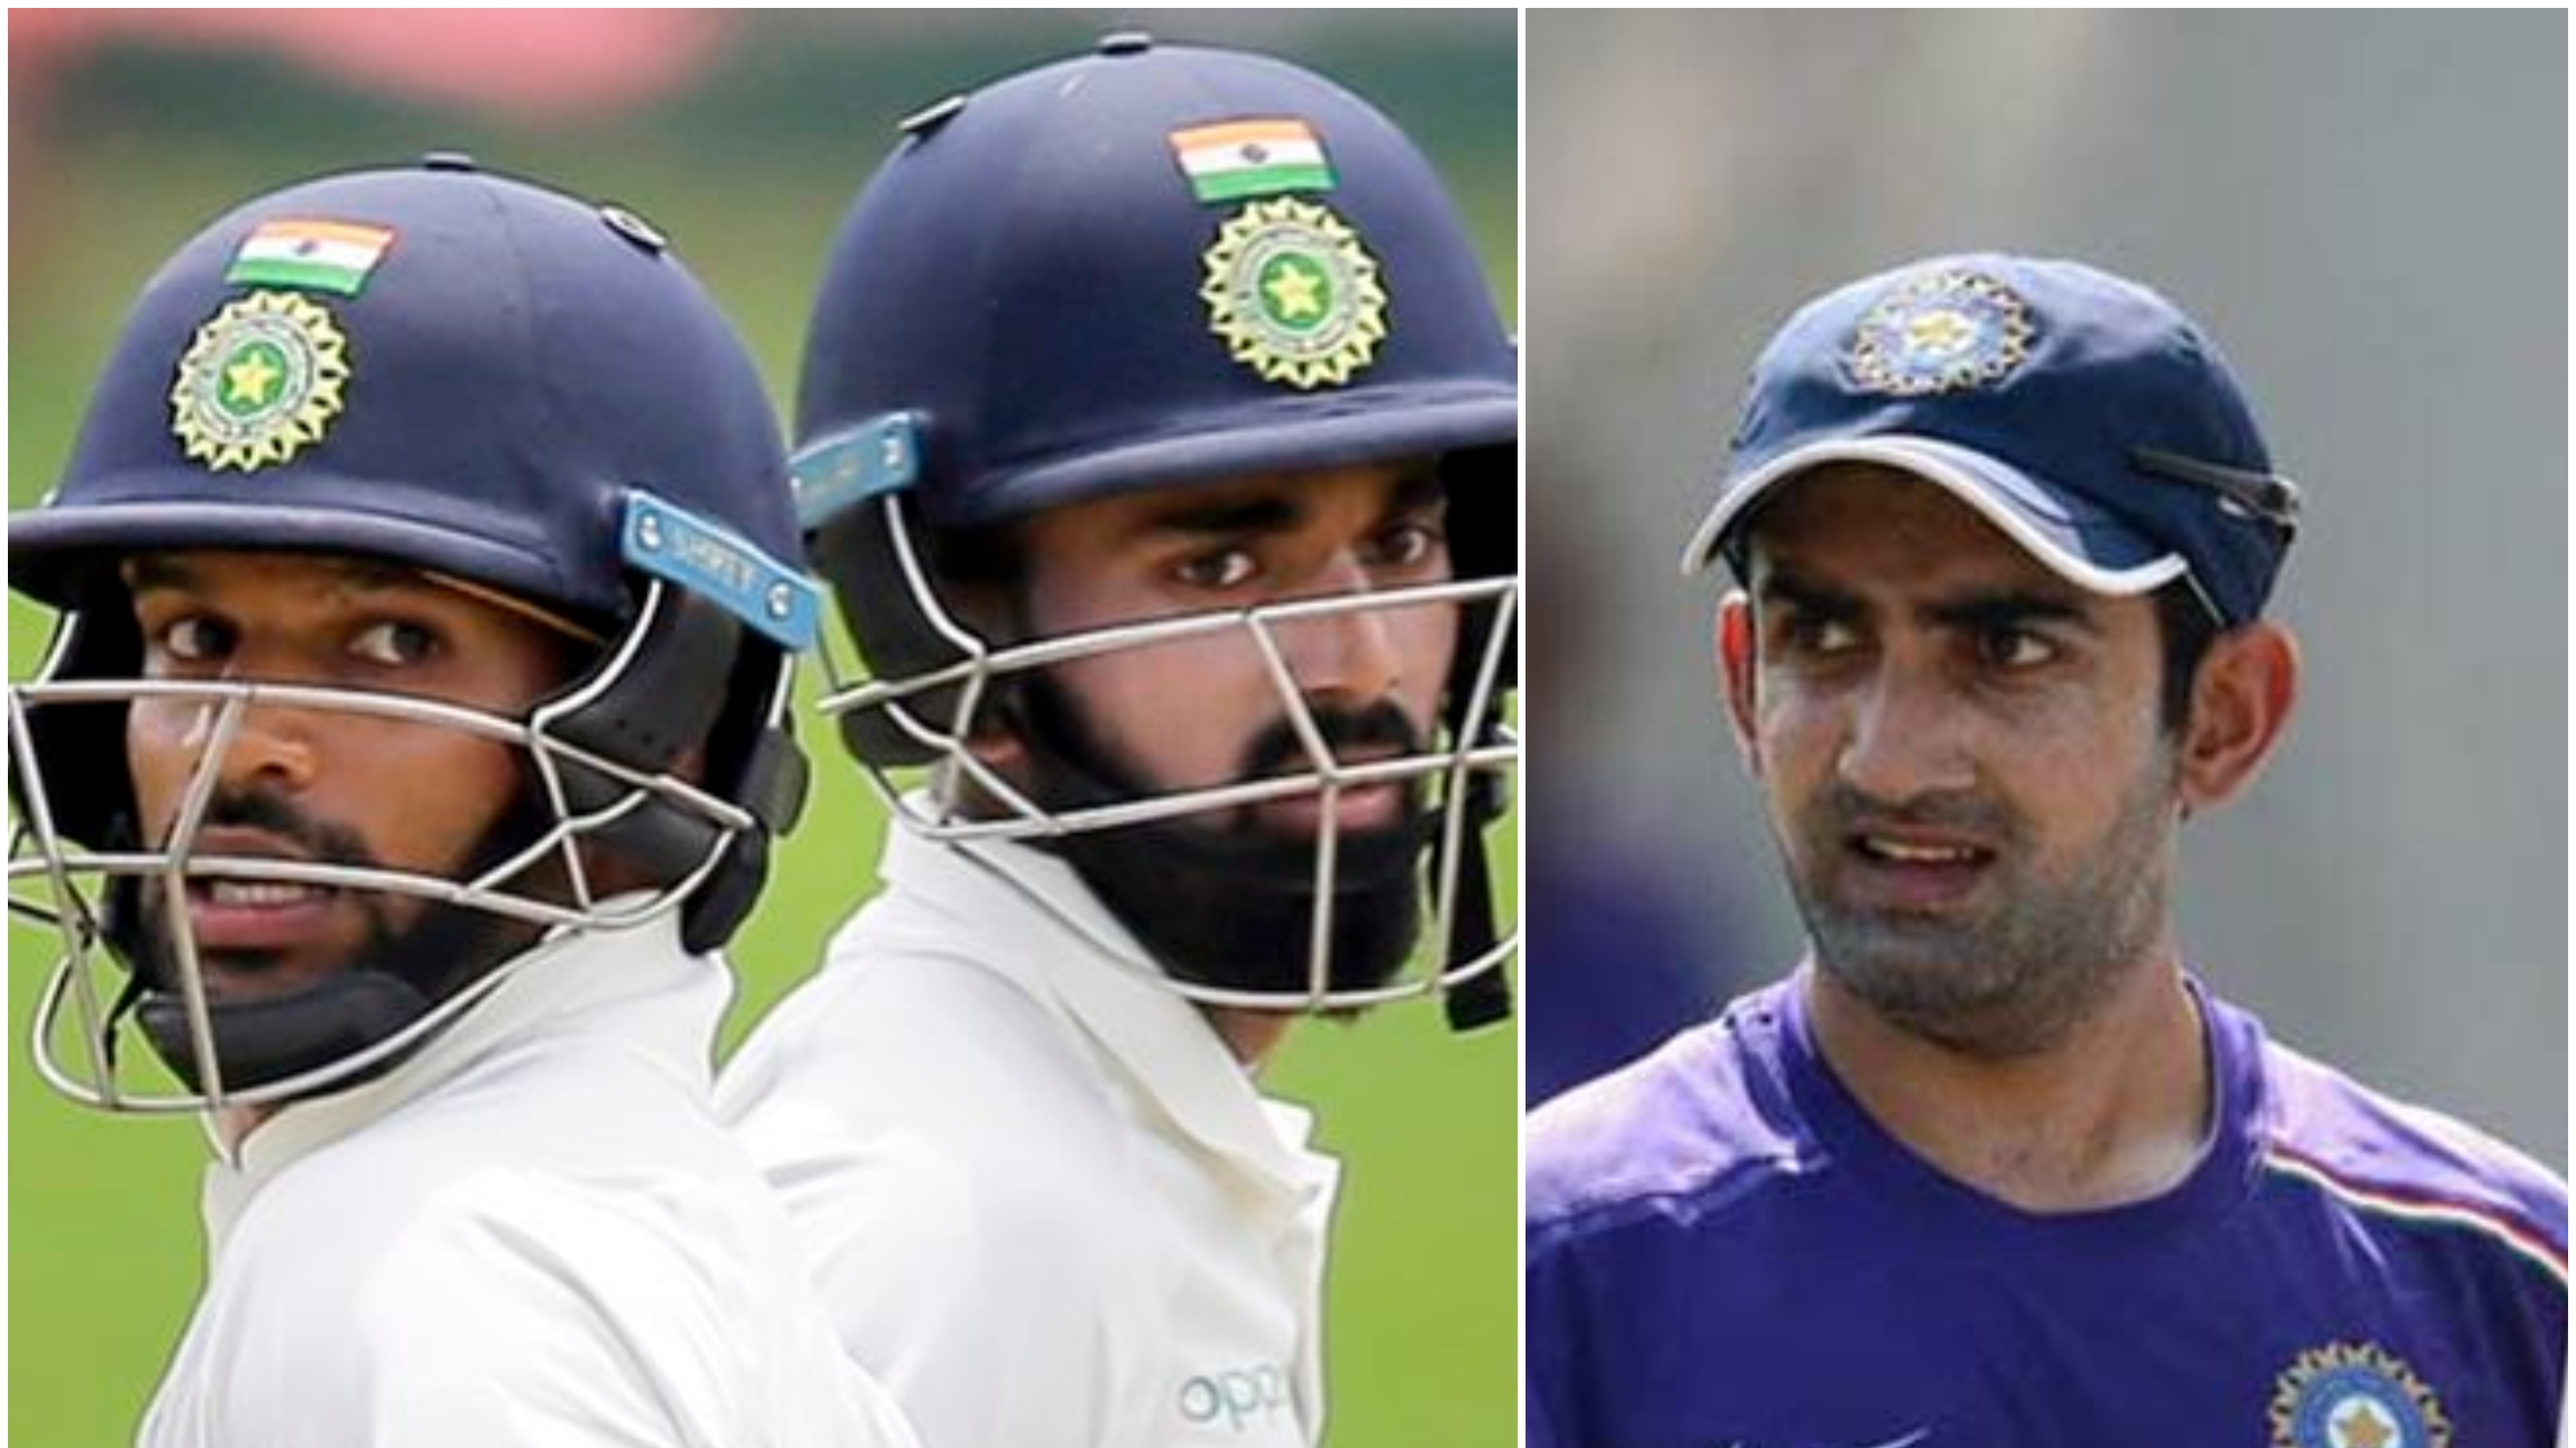 ENG vs IND 2018: Gautam Gambhir picks India's opening combination and backs Cheteshwar Pujara at no.3